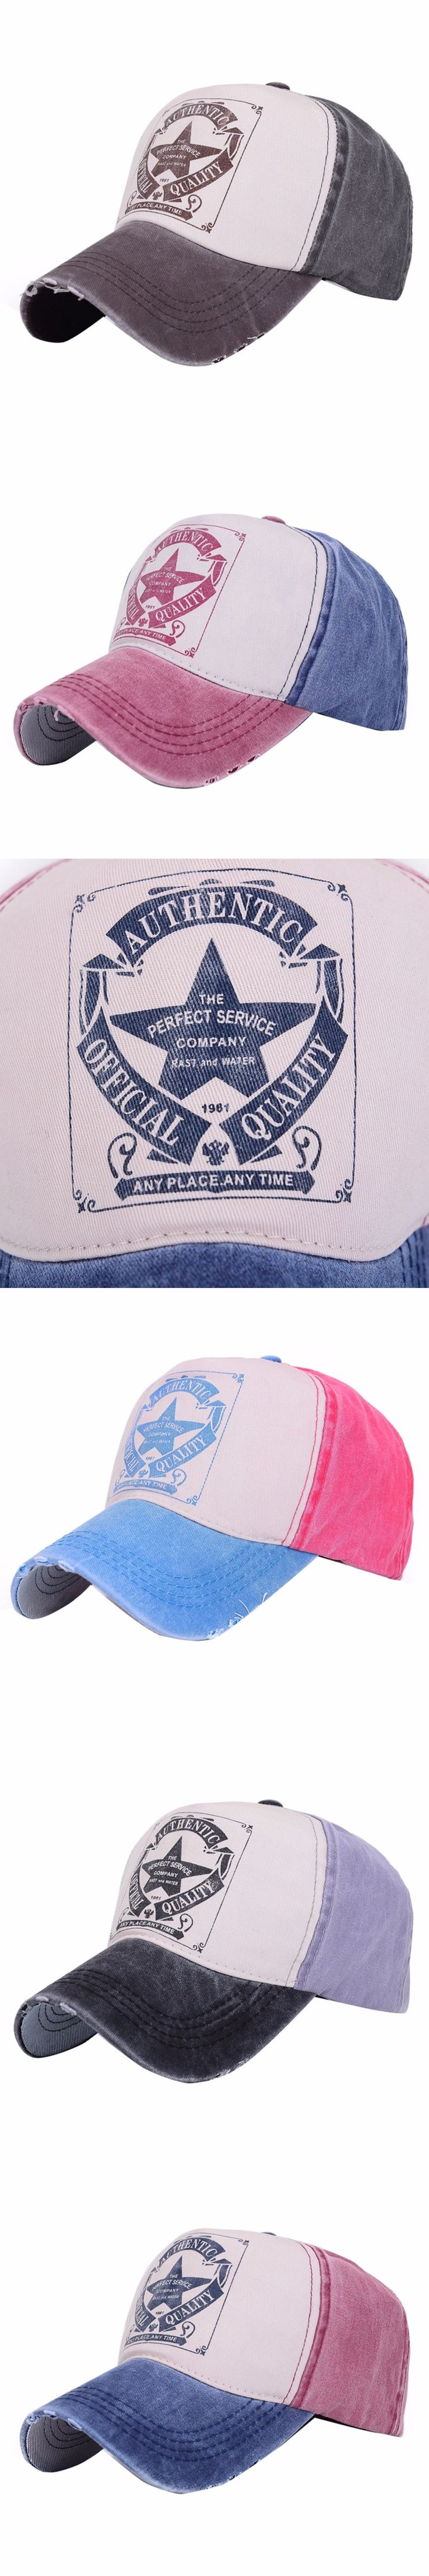 Stylish Classic Men Women Letter Print Hat Outdoor Polo Hats Baseball Ball Cap